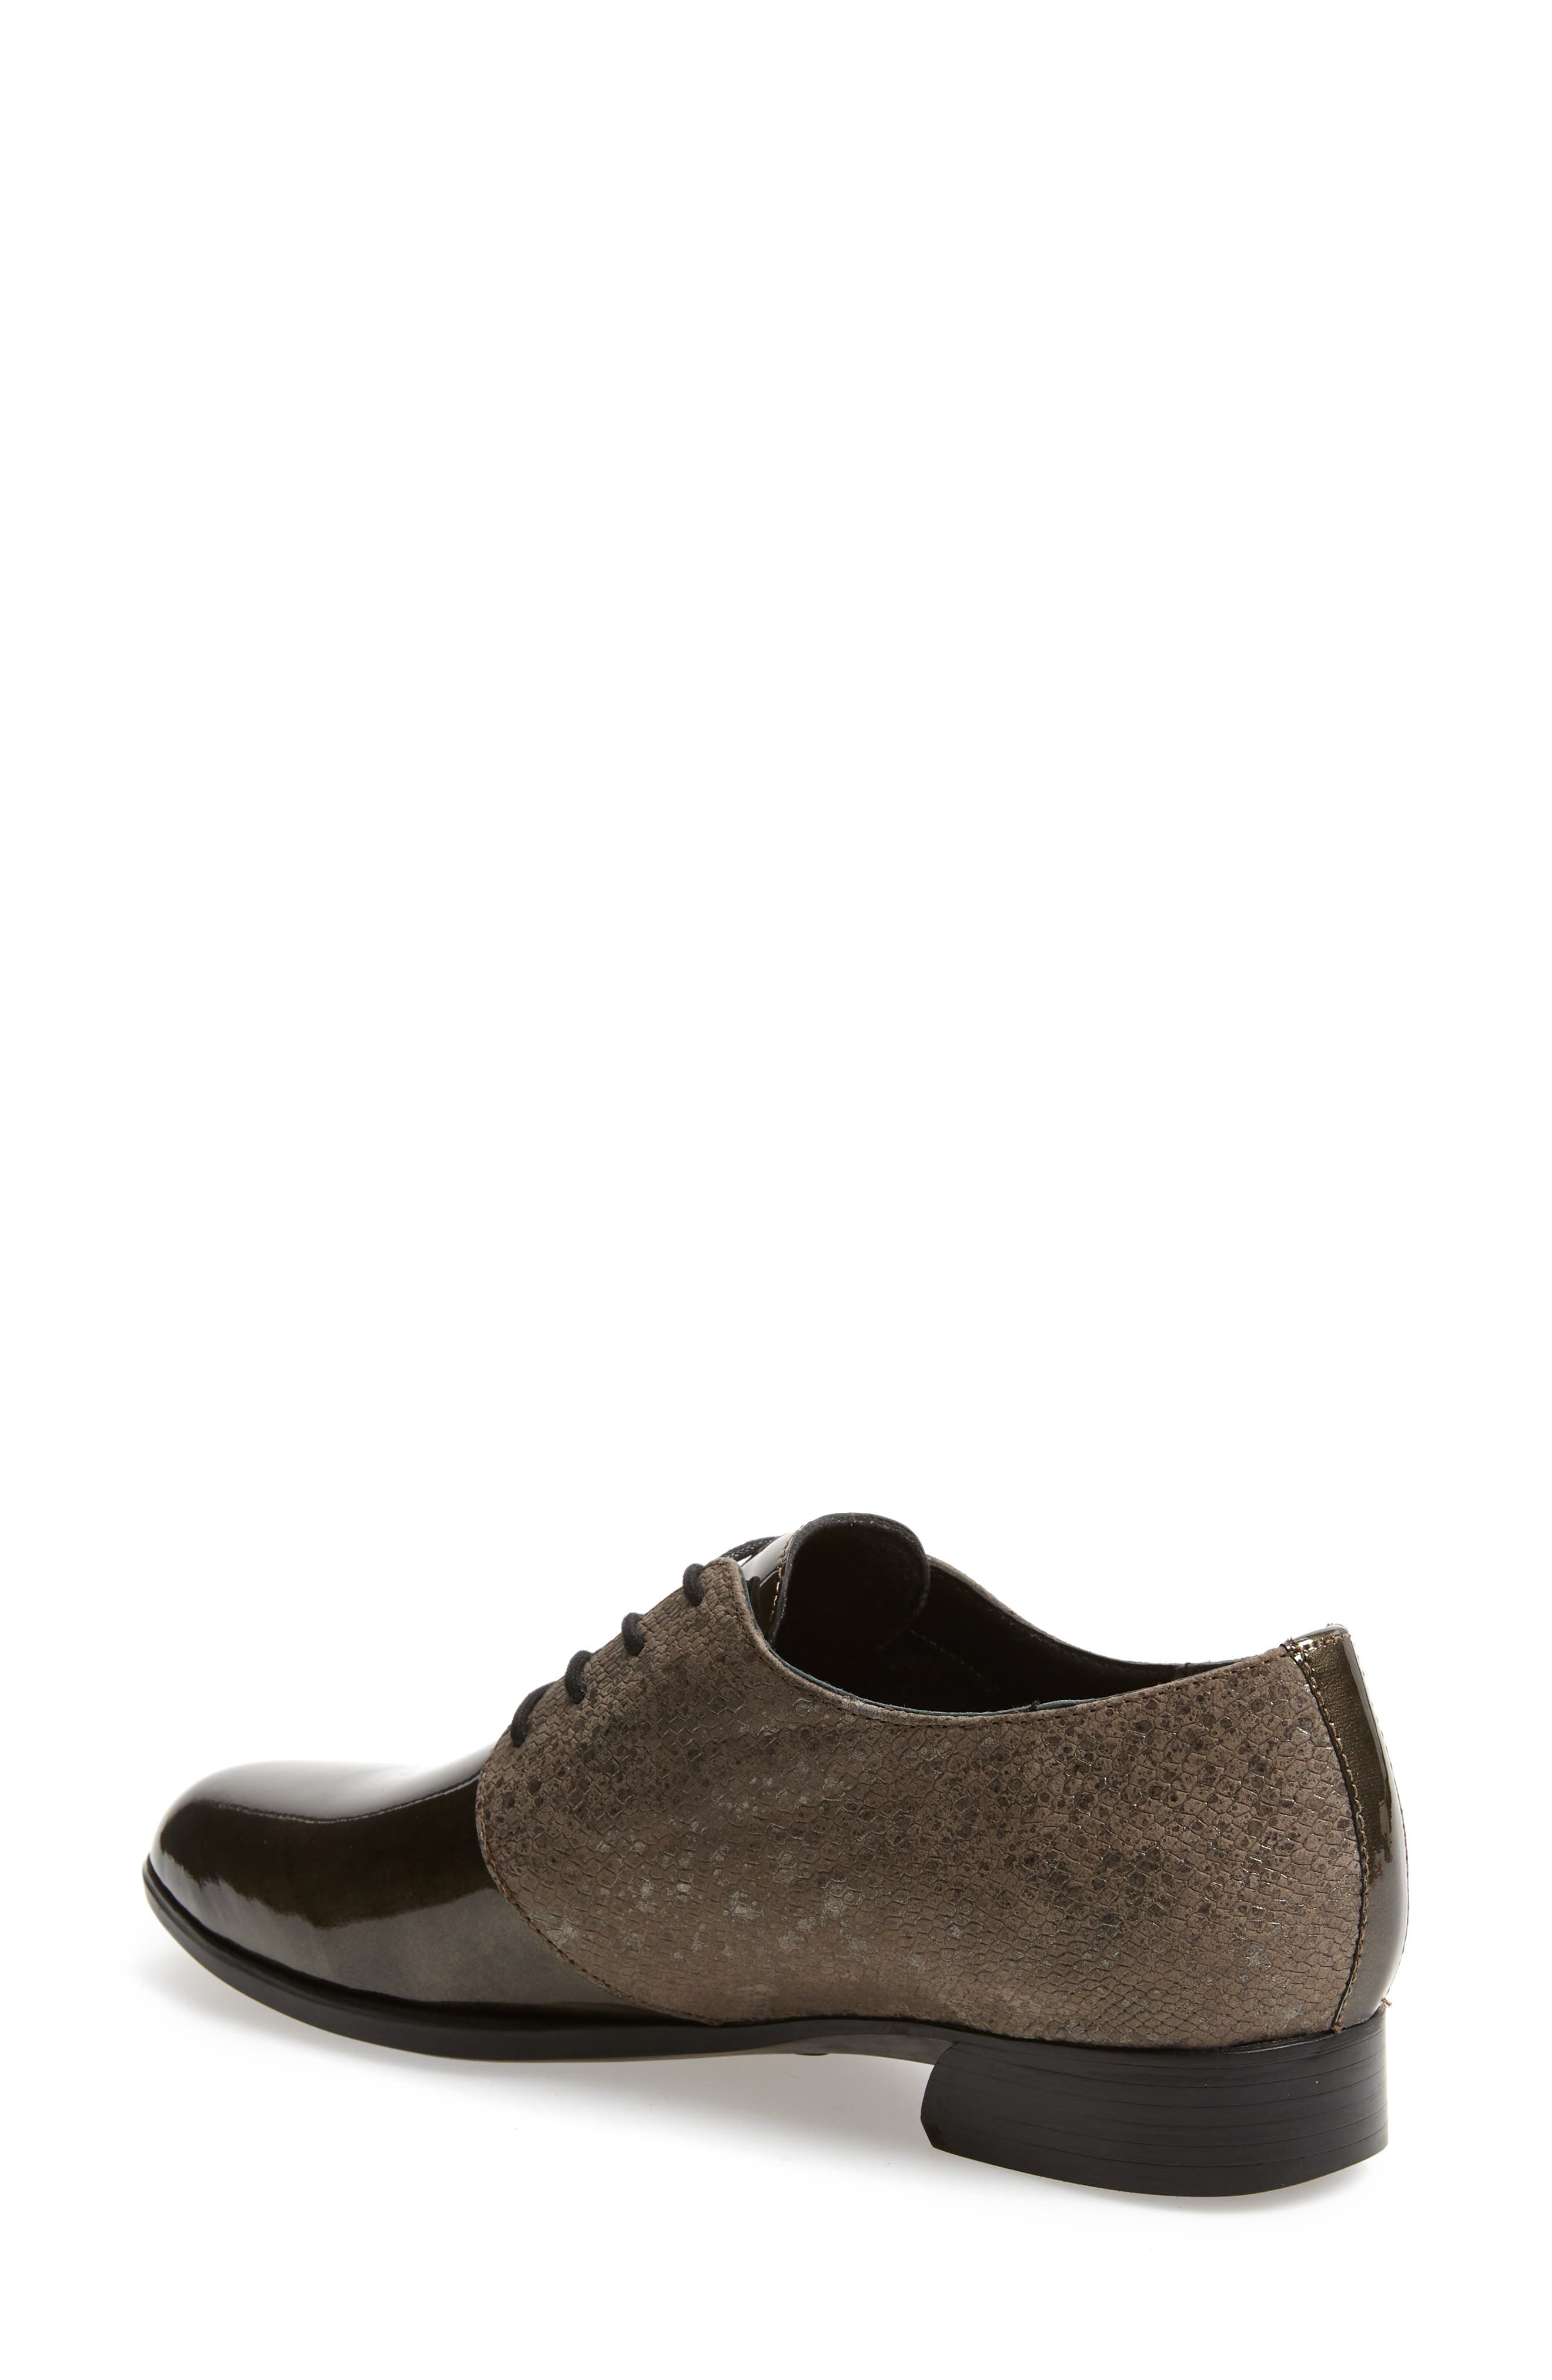 Markella Derby,                             Alternate thumbnail 2, color,                             GREY PATENT LEATHER